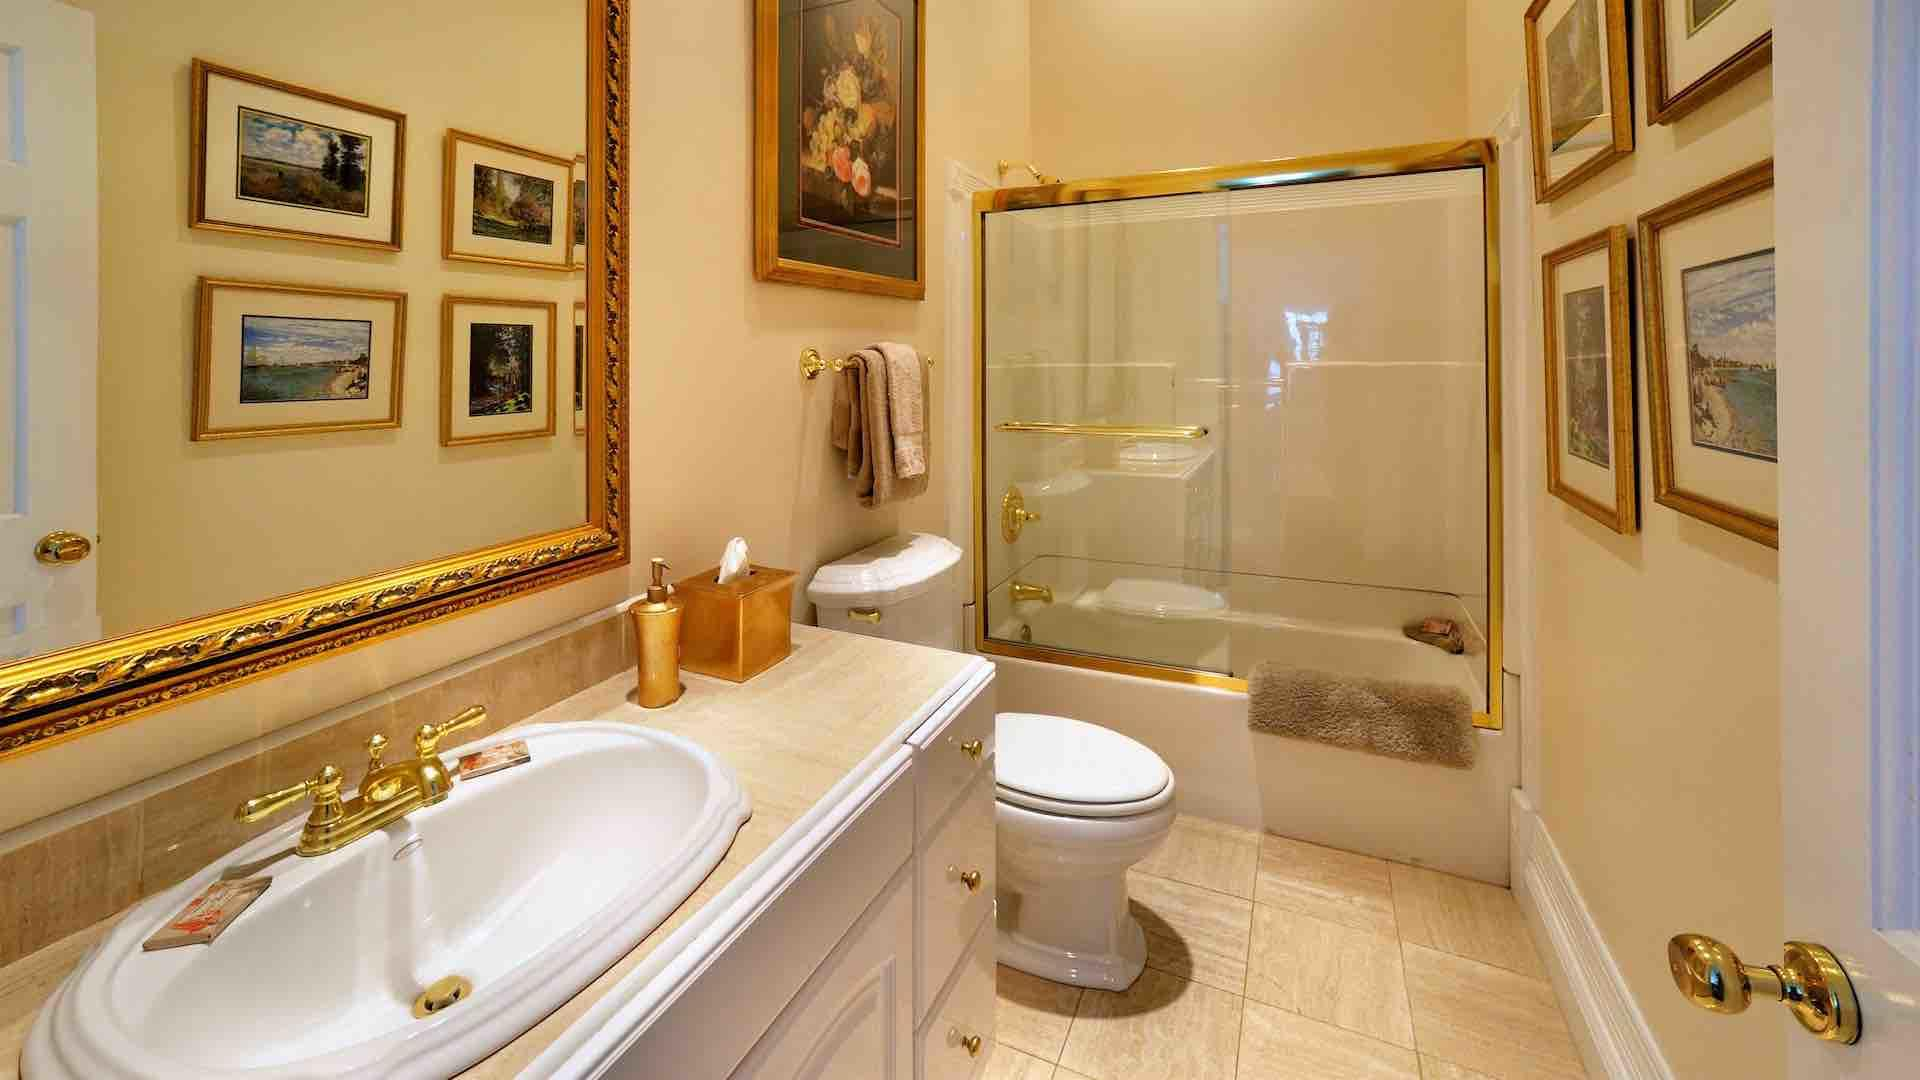 The hall bath also has a tub and shower for the convenience of extra guests...